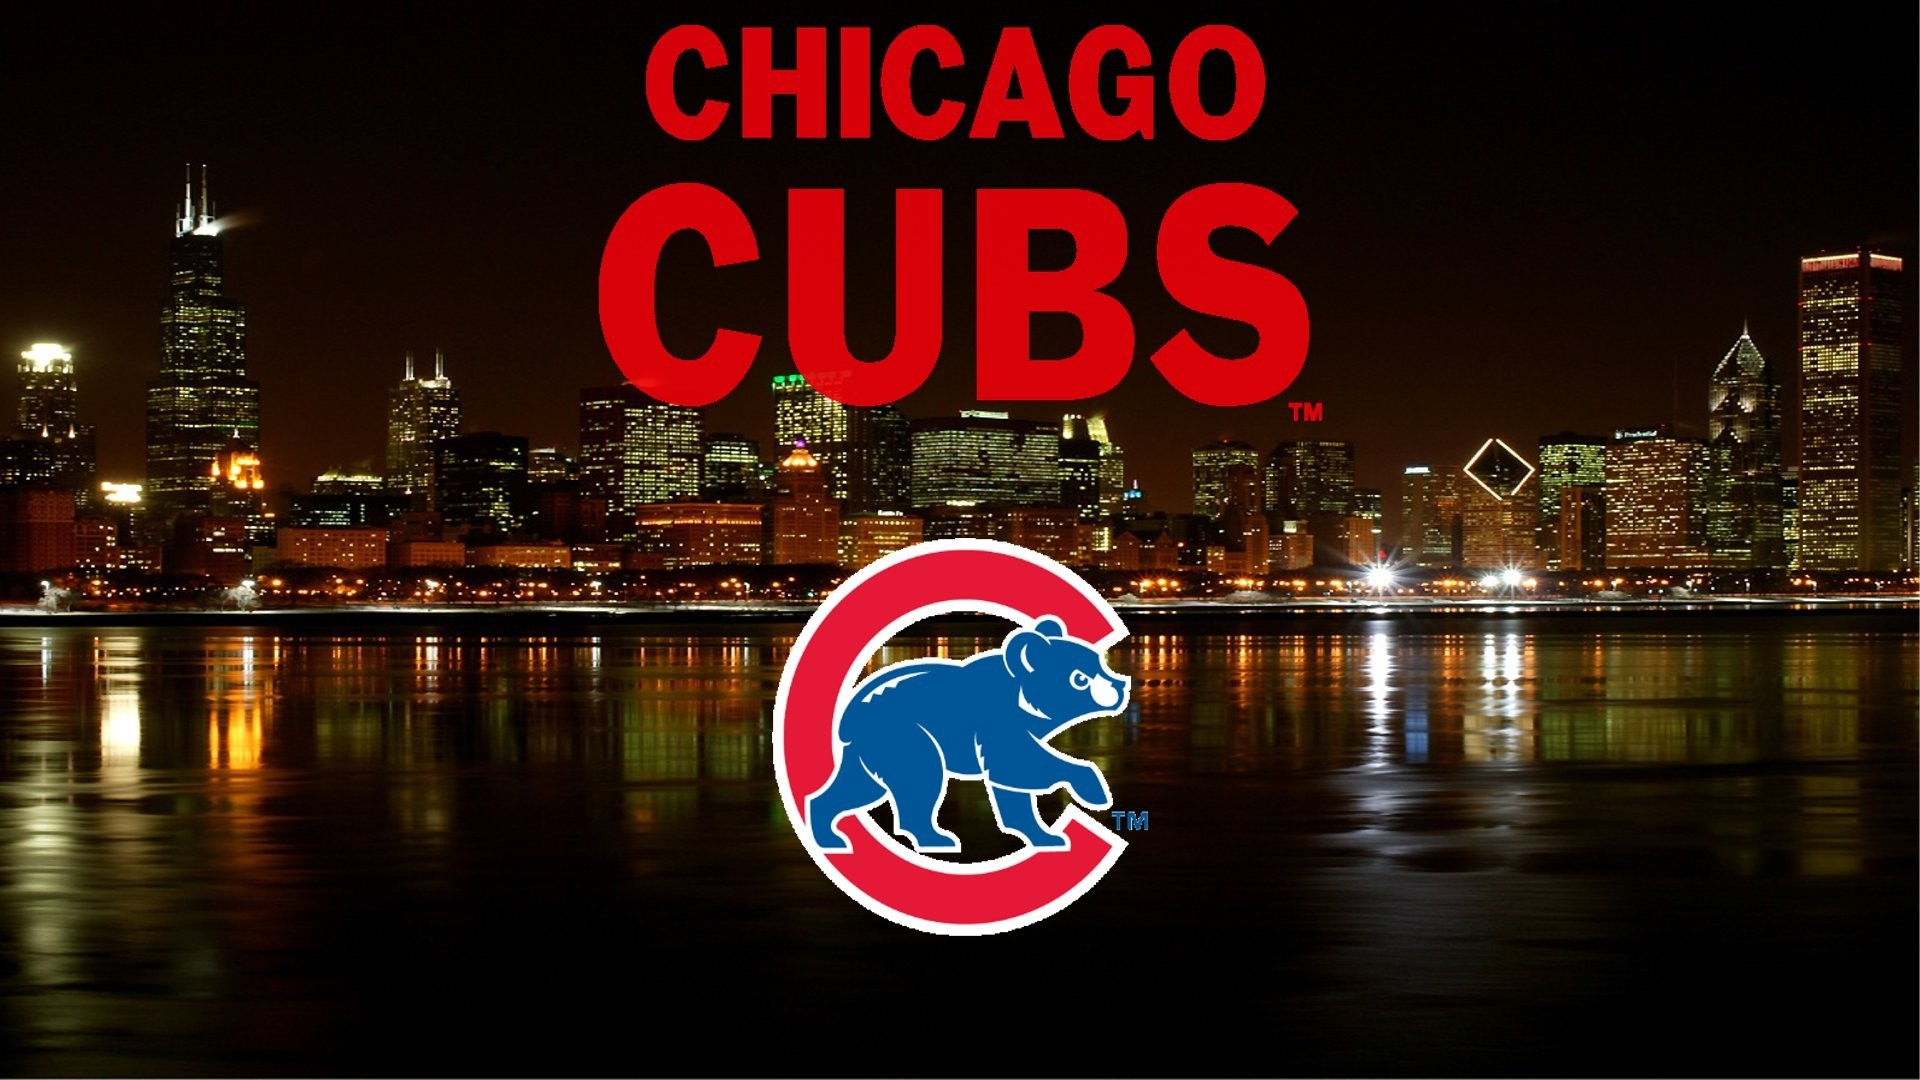 1920x1080 ... screensavers wallpapersafari; chicago cubs wallpaper for android  wallpapersafari ...